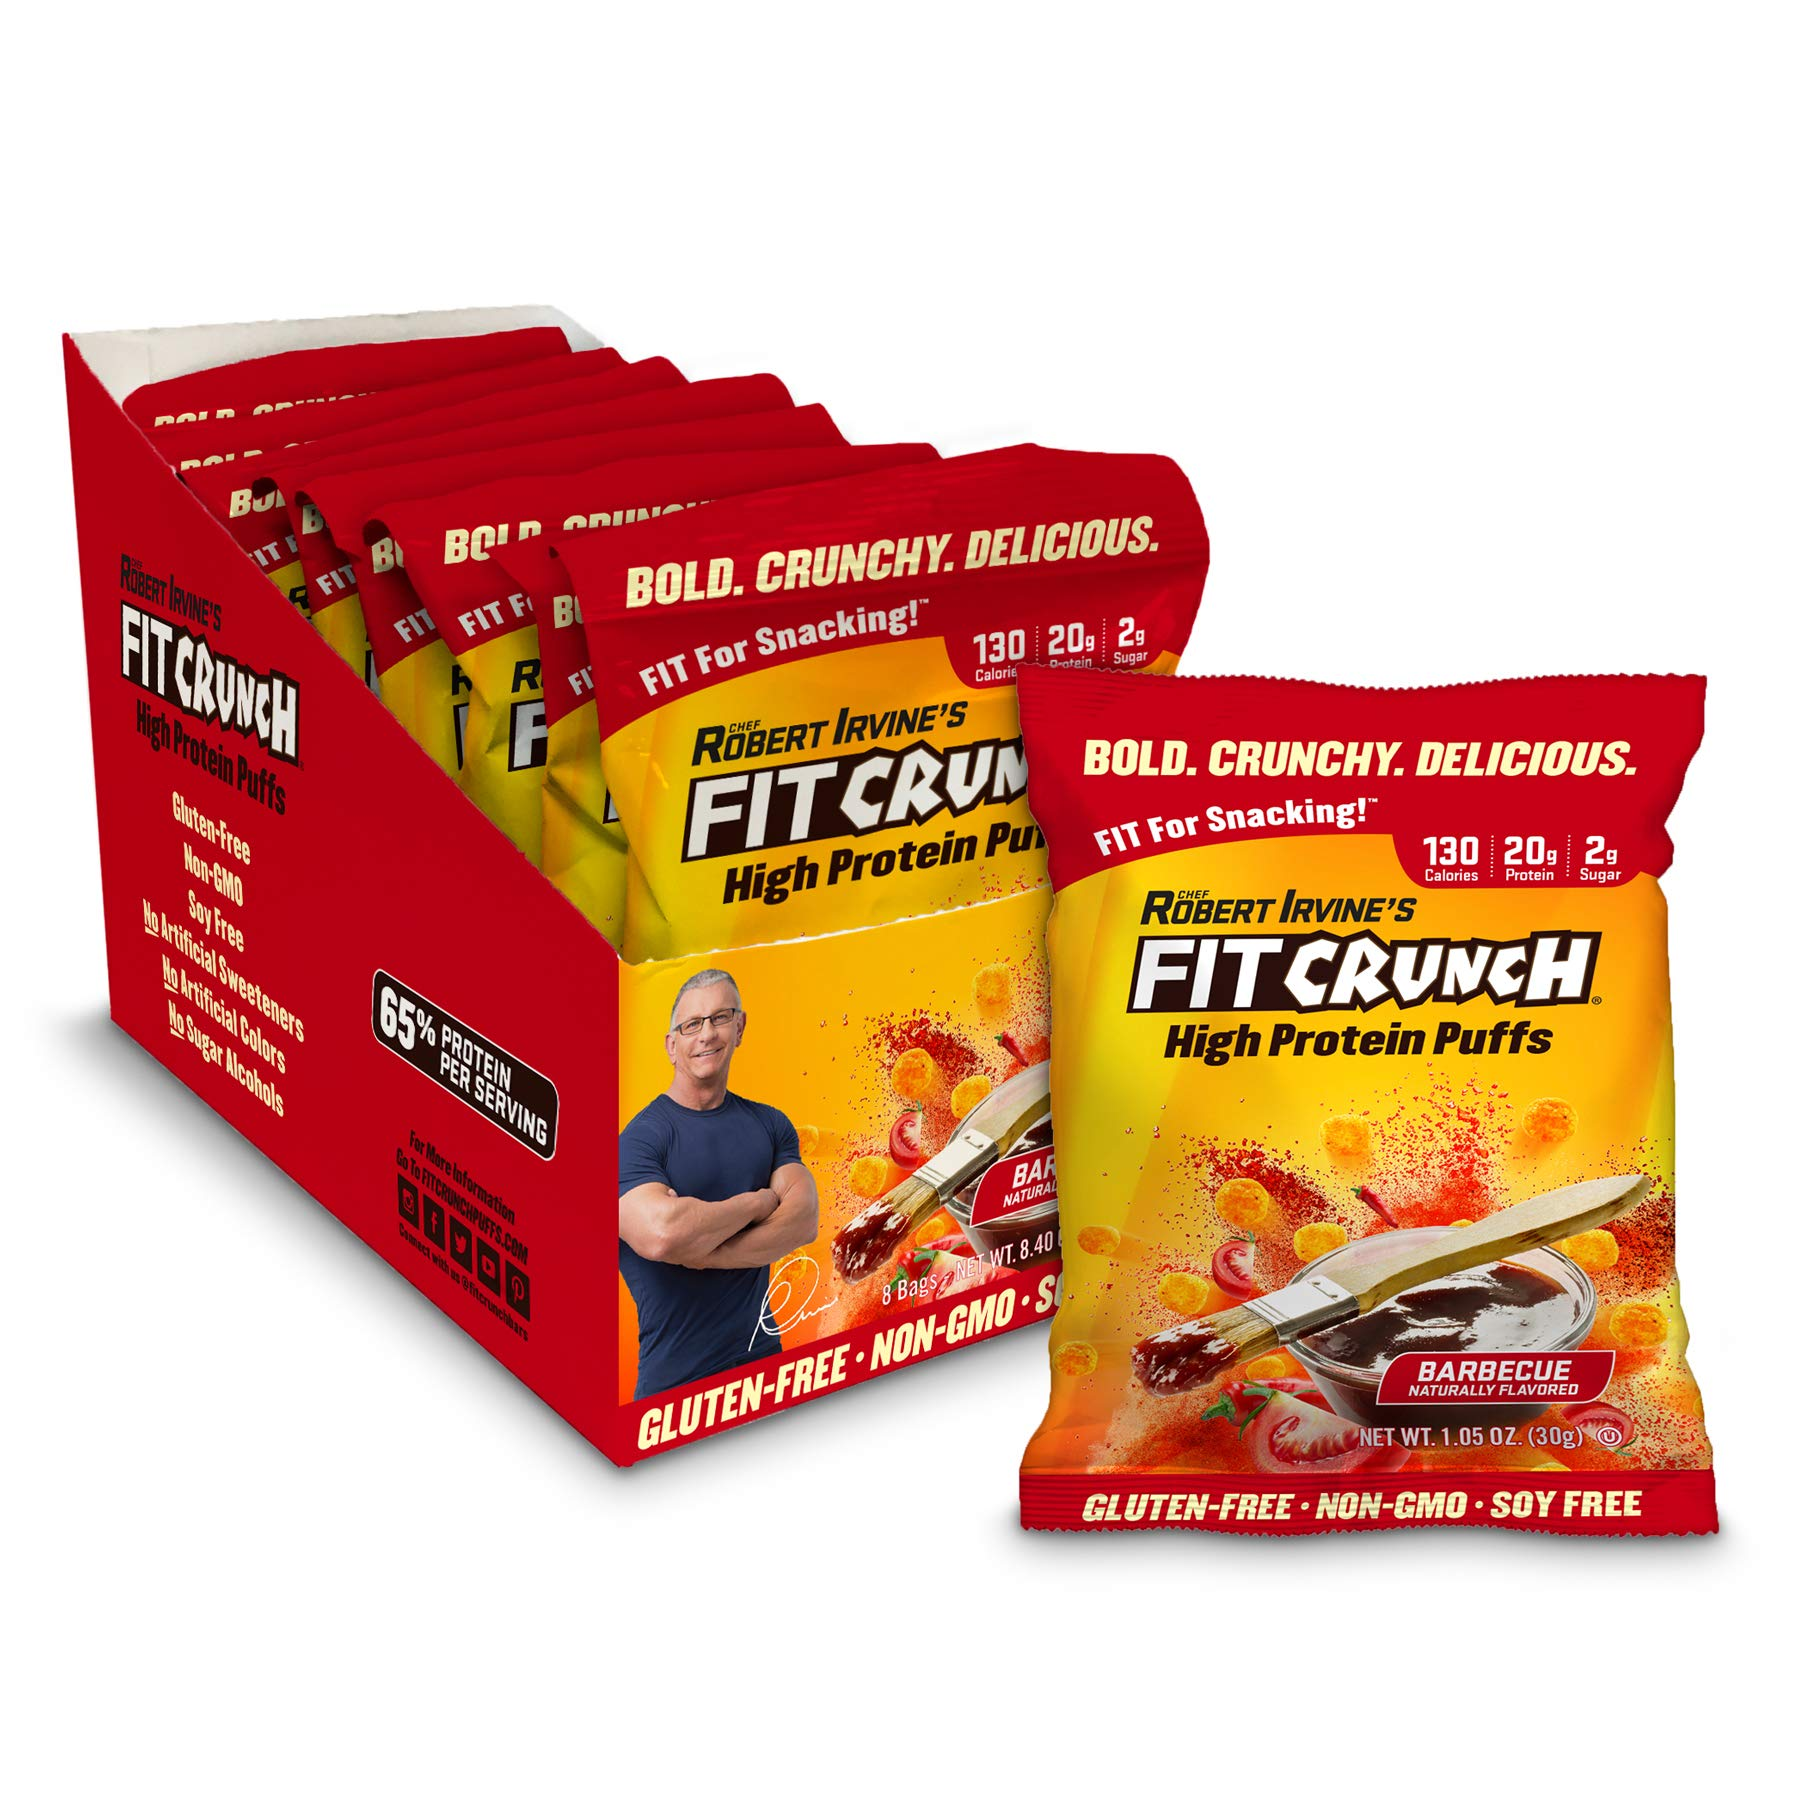 FITCRUNCH Protein Puffs | Designed by Robert Irvine | Keto-Friendly High Protein Puff Snacks | 2g of Sugar, NON-GMO, Gluten Free & 20g of Protein | 240g (8 Bags) (Barbecue)